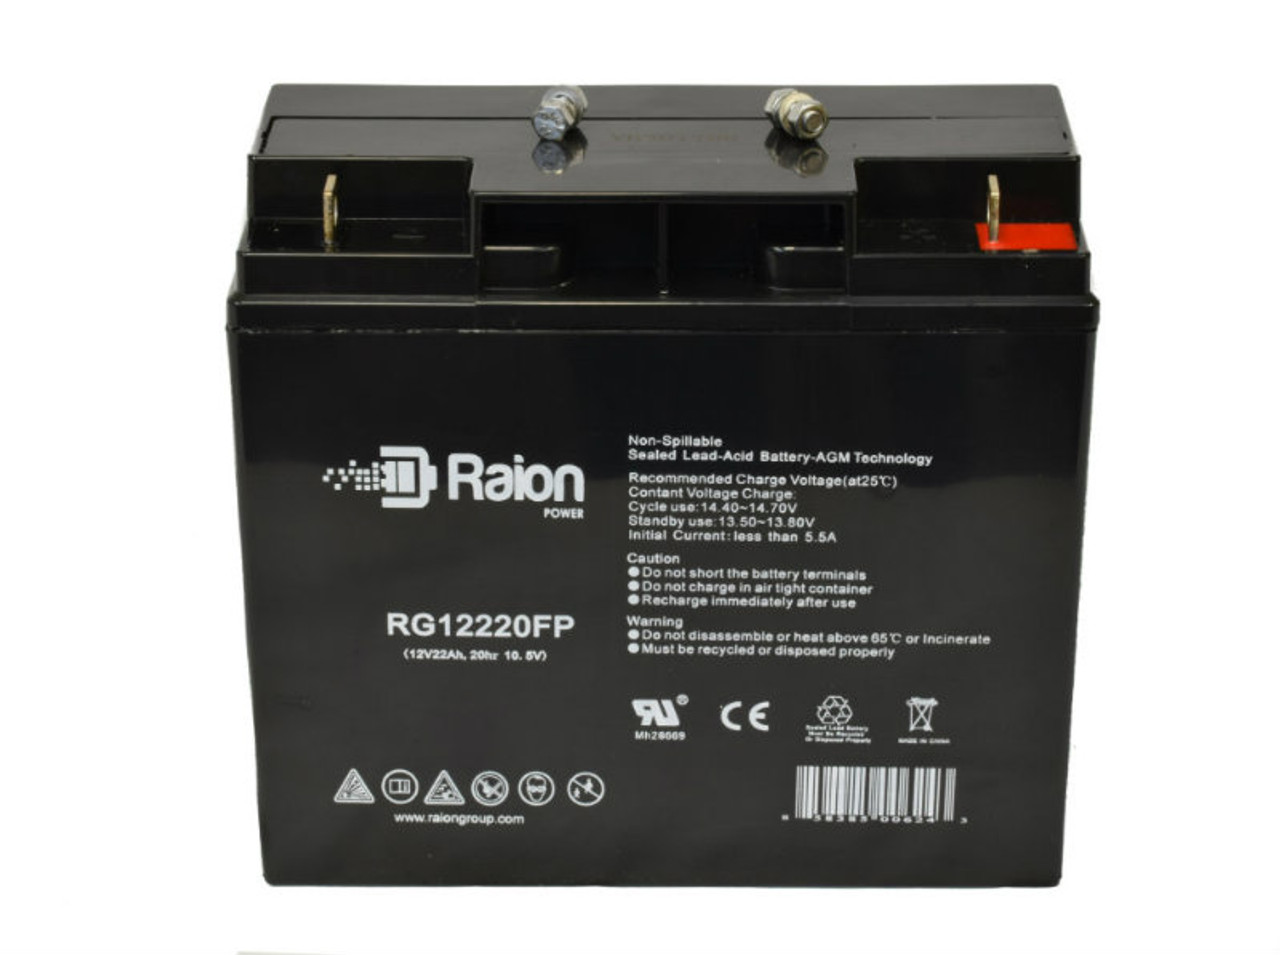 RG12220FP Sealed Lead Acid Battery Pack For Pride Rally Mobility Scooter